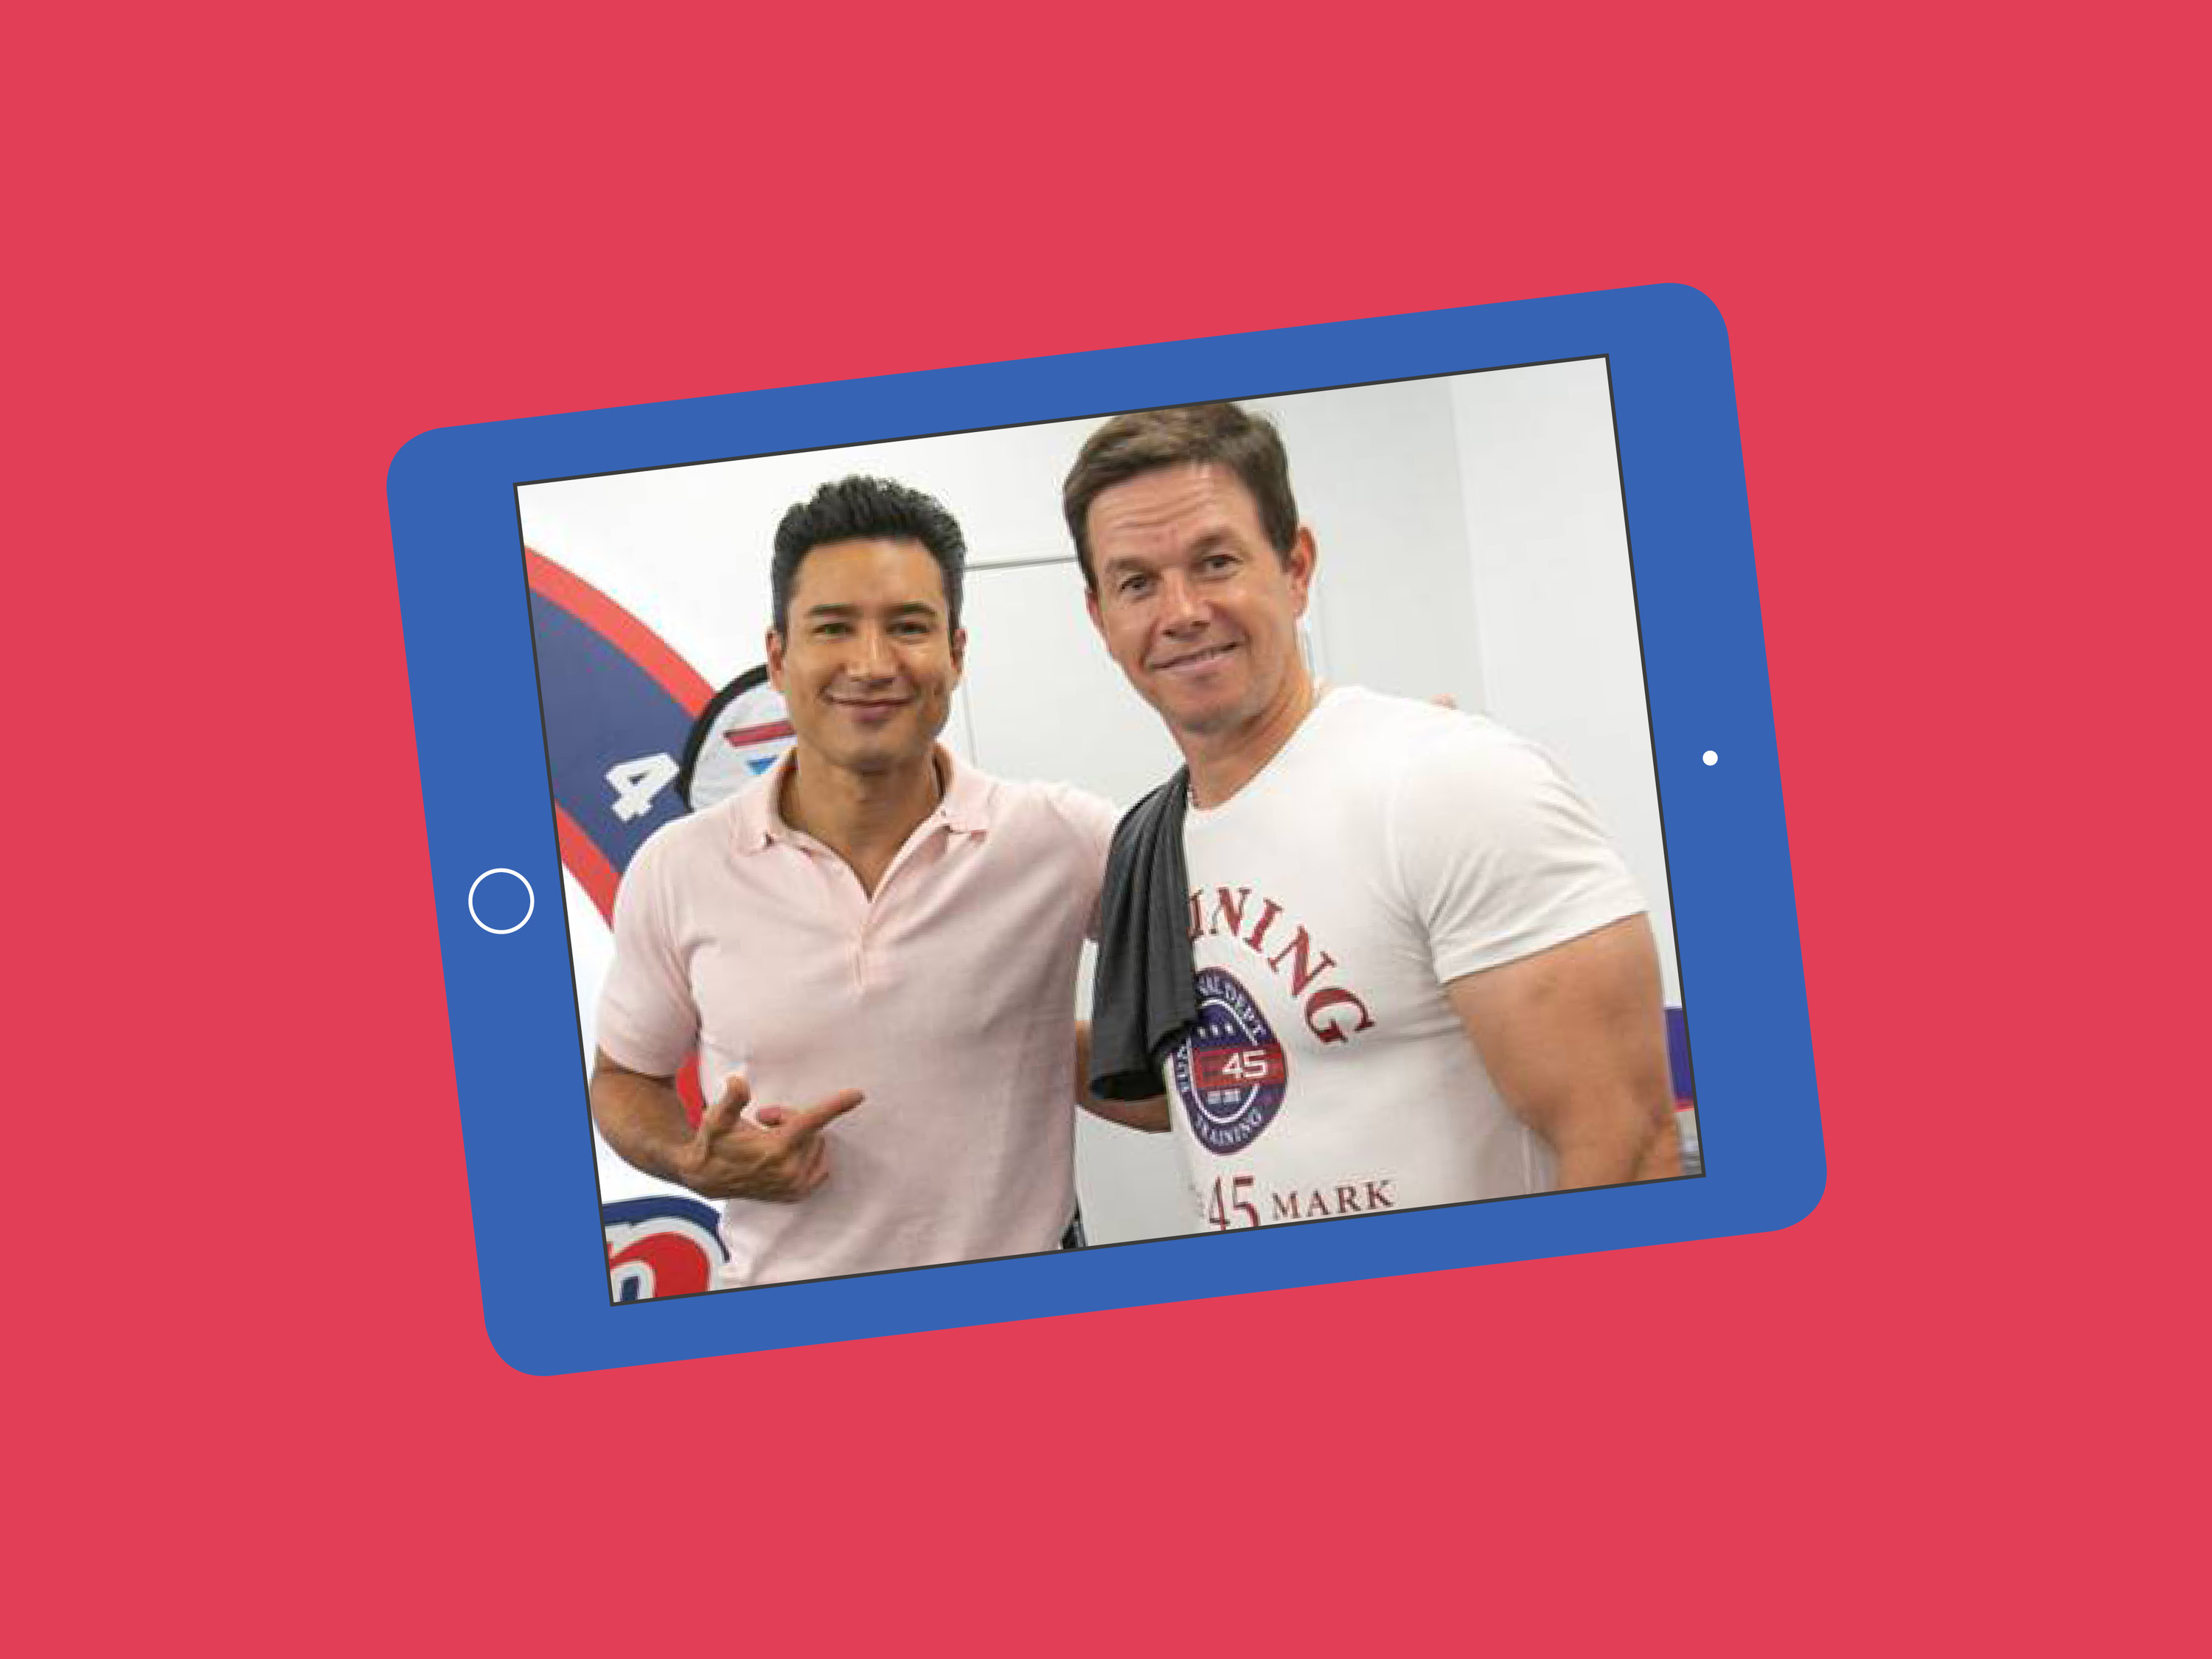 Mark Wahlberg is hosting an F45 workout on Instagram